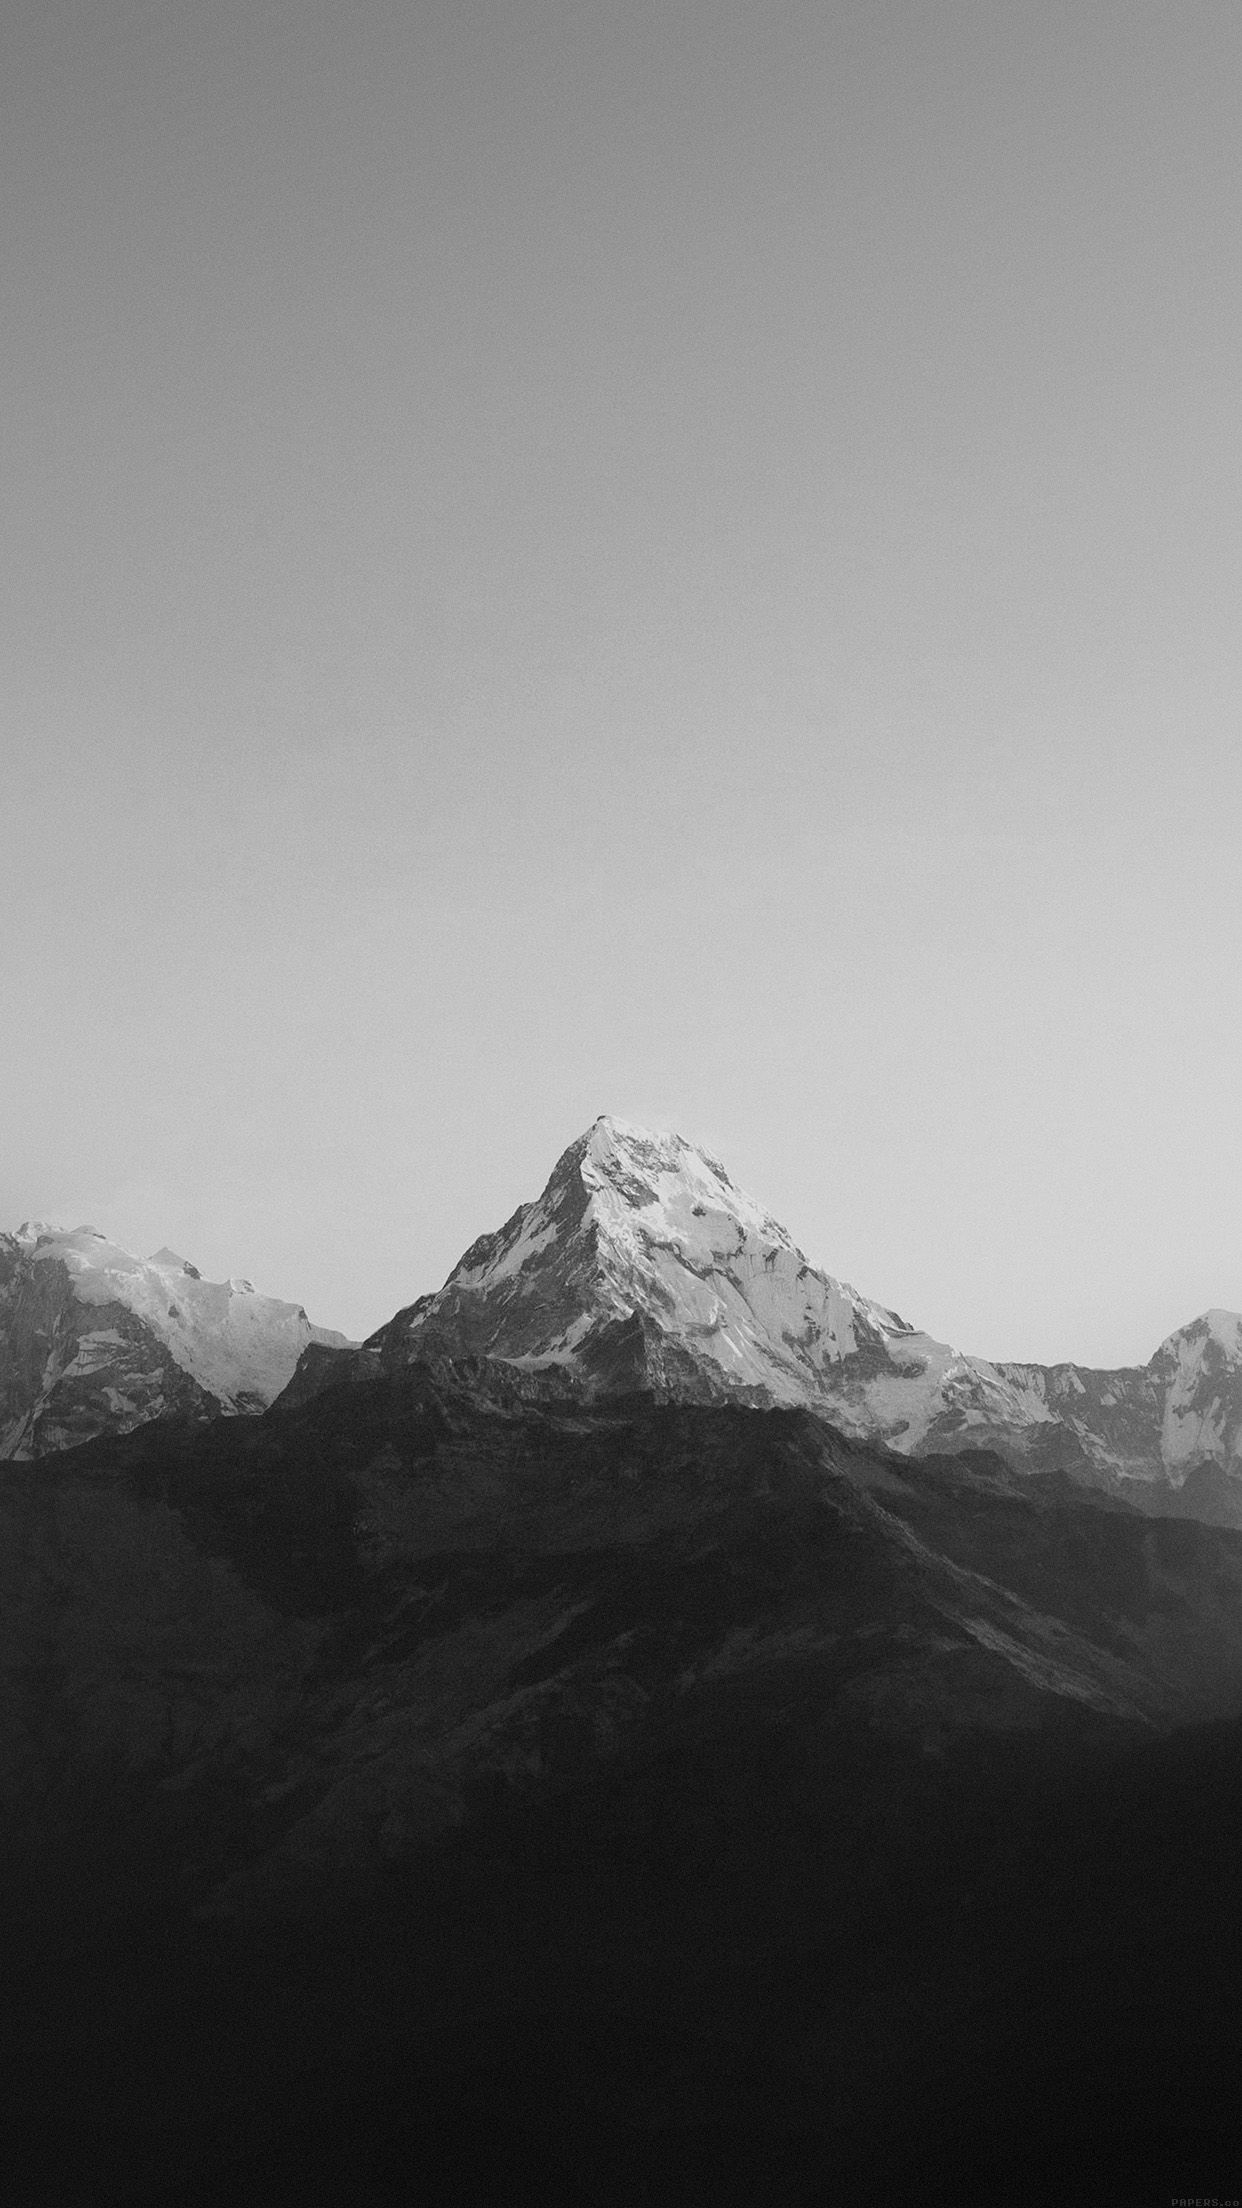 Hipster Fall Desktop Wallpaper Papers Co Iphone Wallpaper Ml66 Mountain Bw Dark High